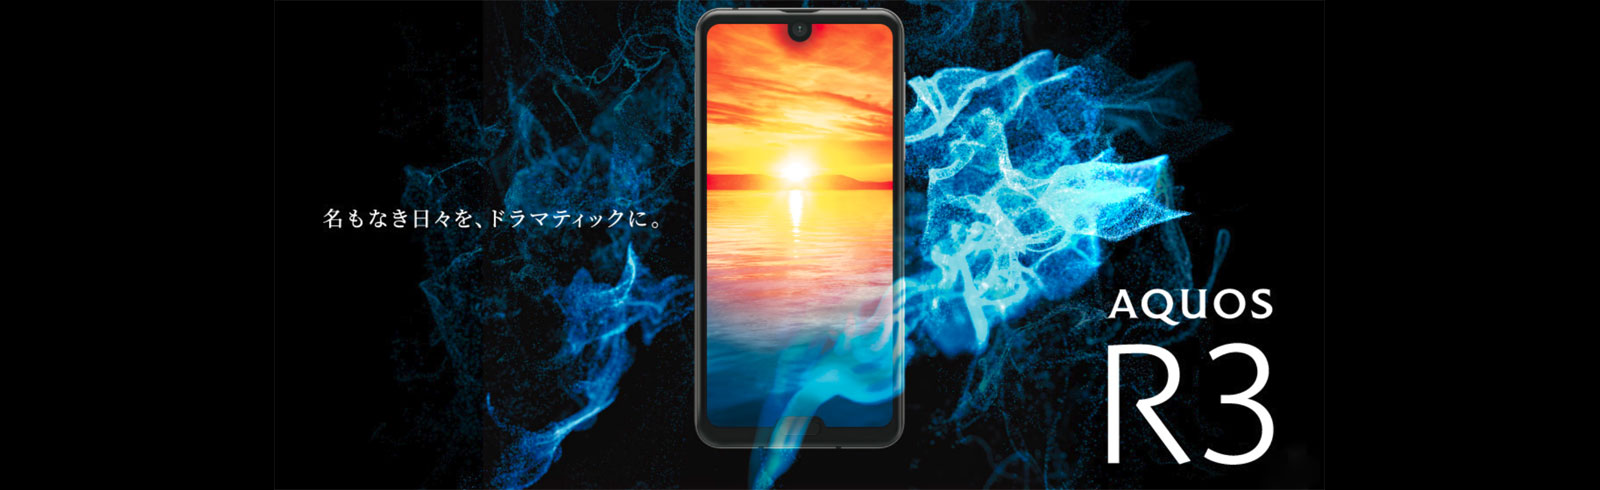 Sharp announces the Aquos R3 in Japan, features Snapdragon 855, dual rear cameras